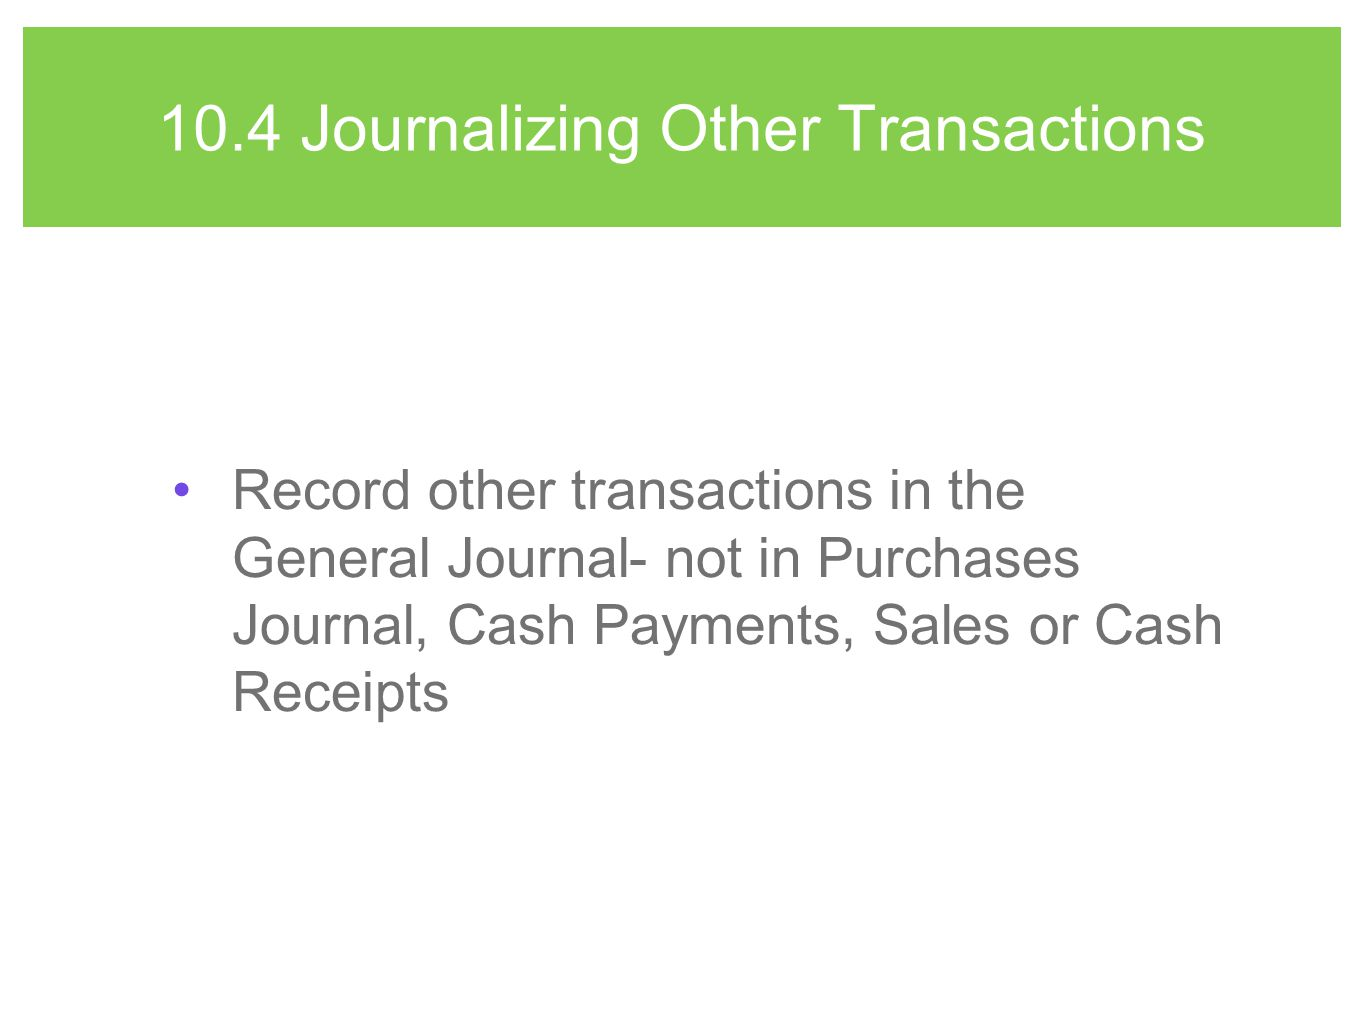 10.4 Journalizing Other Transactions